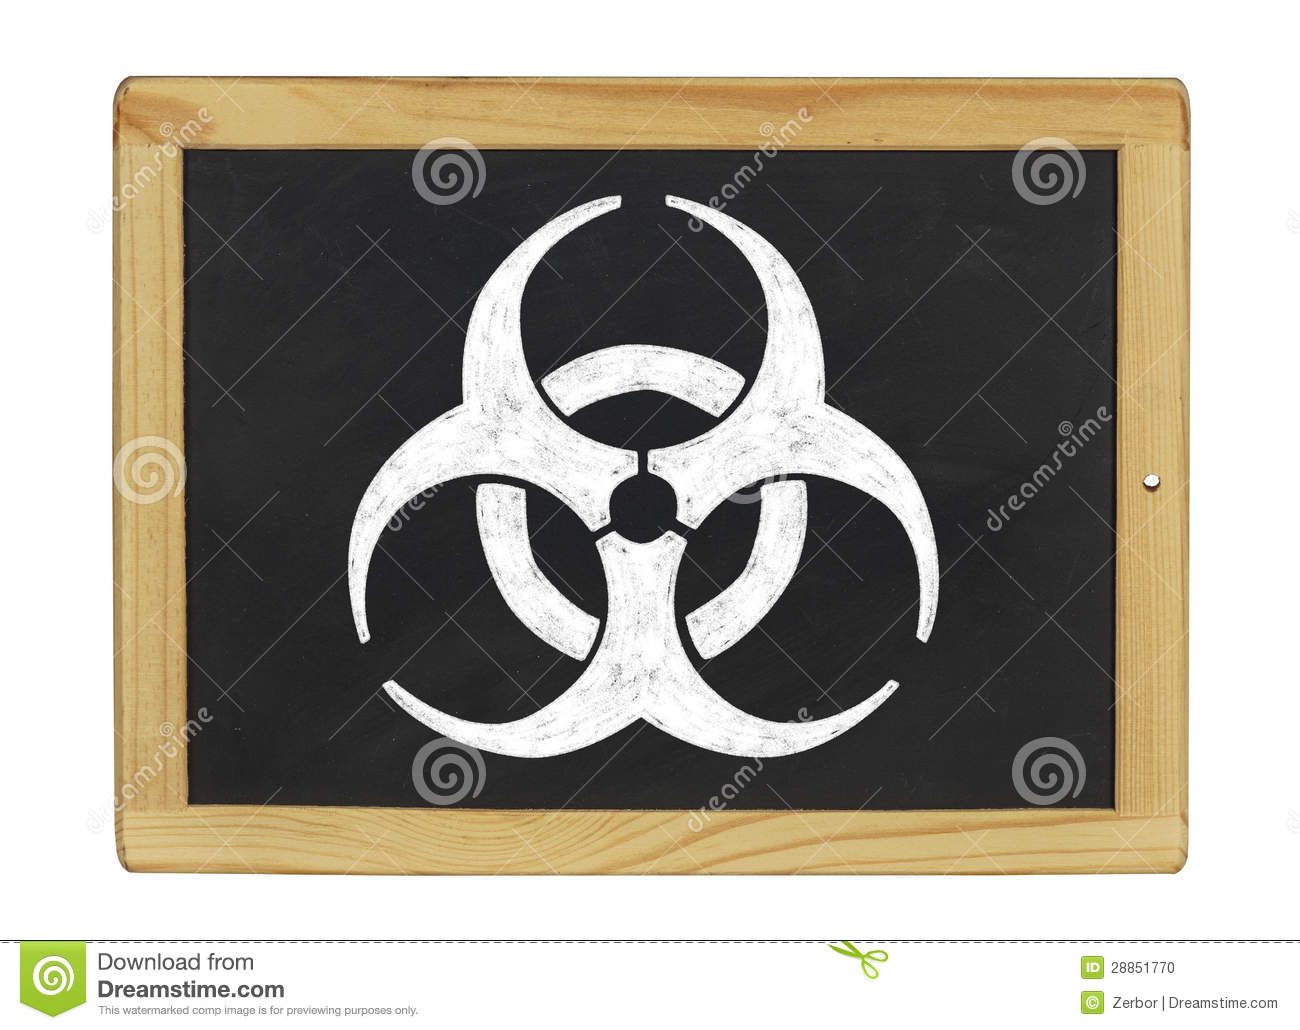 Biohazard symbol on a chalkboard